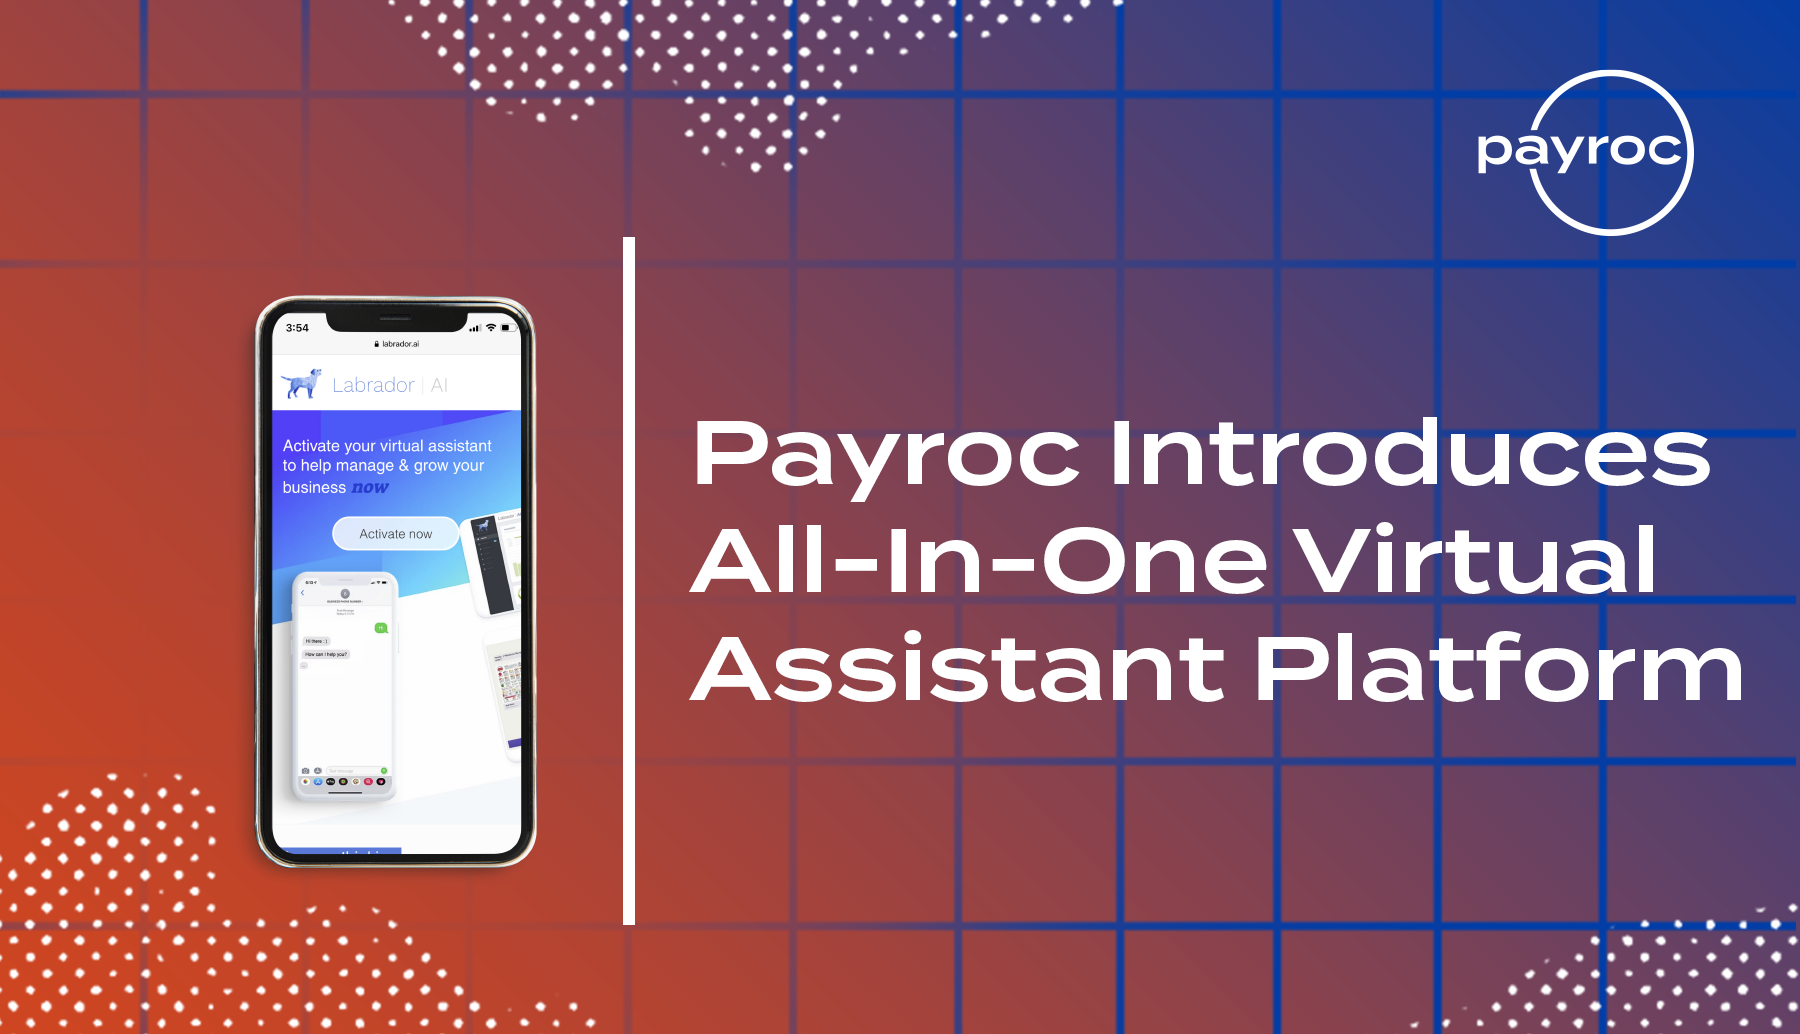 Payroc Introduces All-In-One Virtual Assistant Platform Labrador A.I.